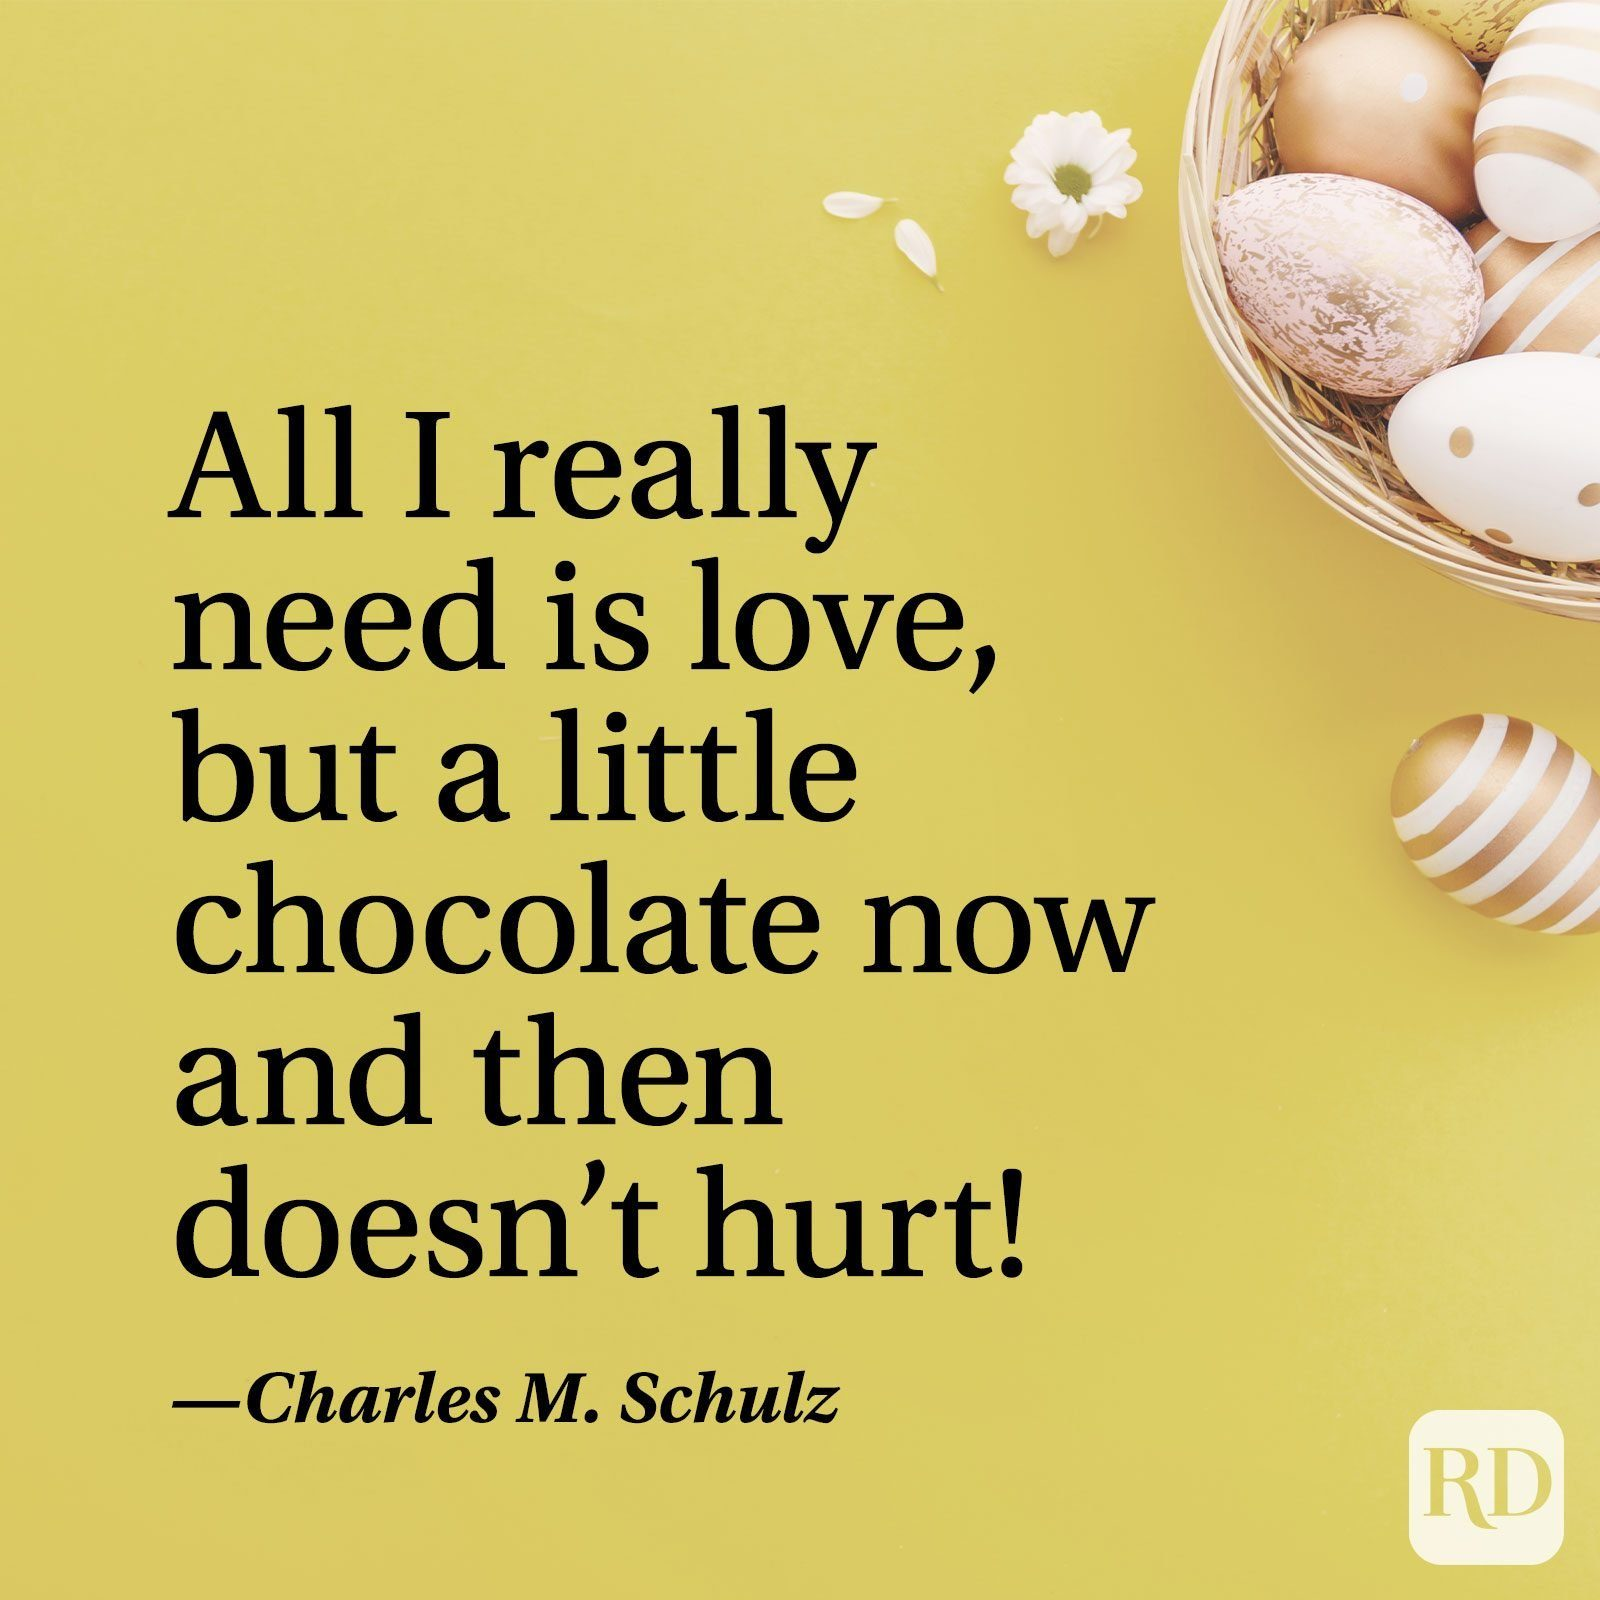 """""""All I really need is love, but a little chocolate now and then doesn't hurt!"""" — Charles M. Schulz"""